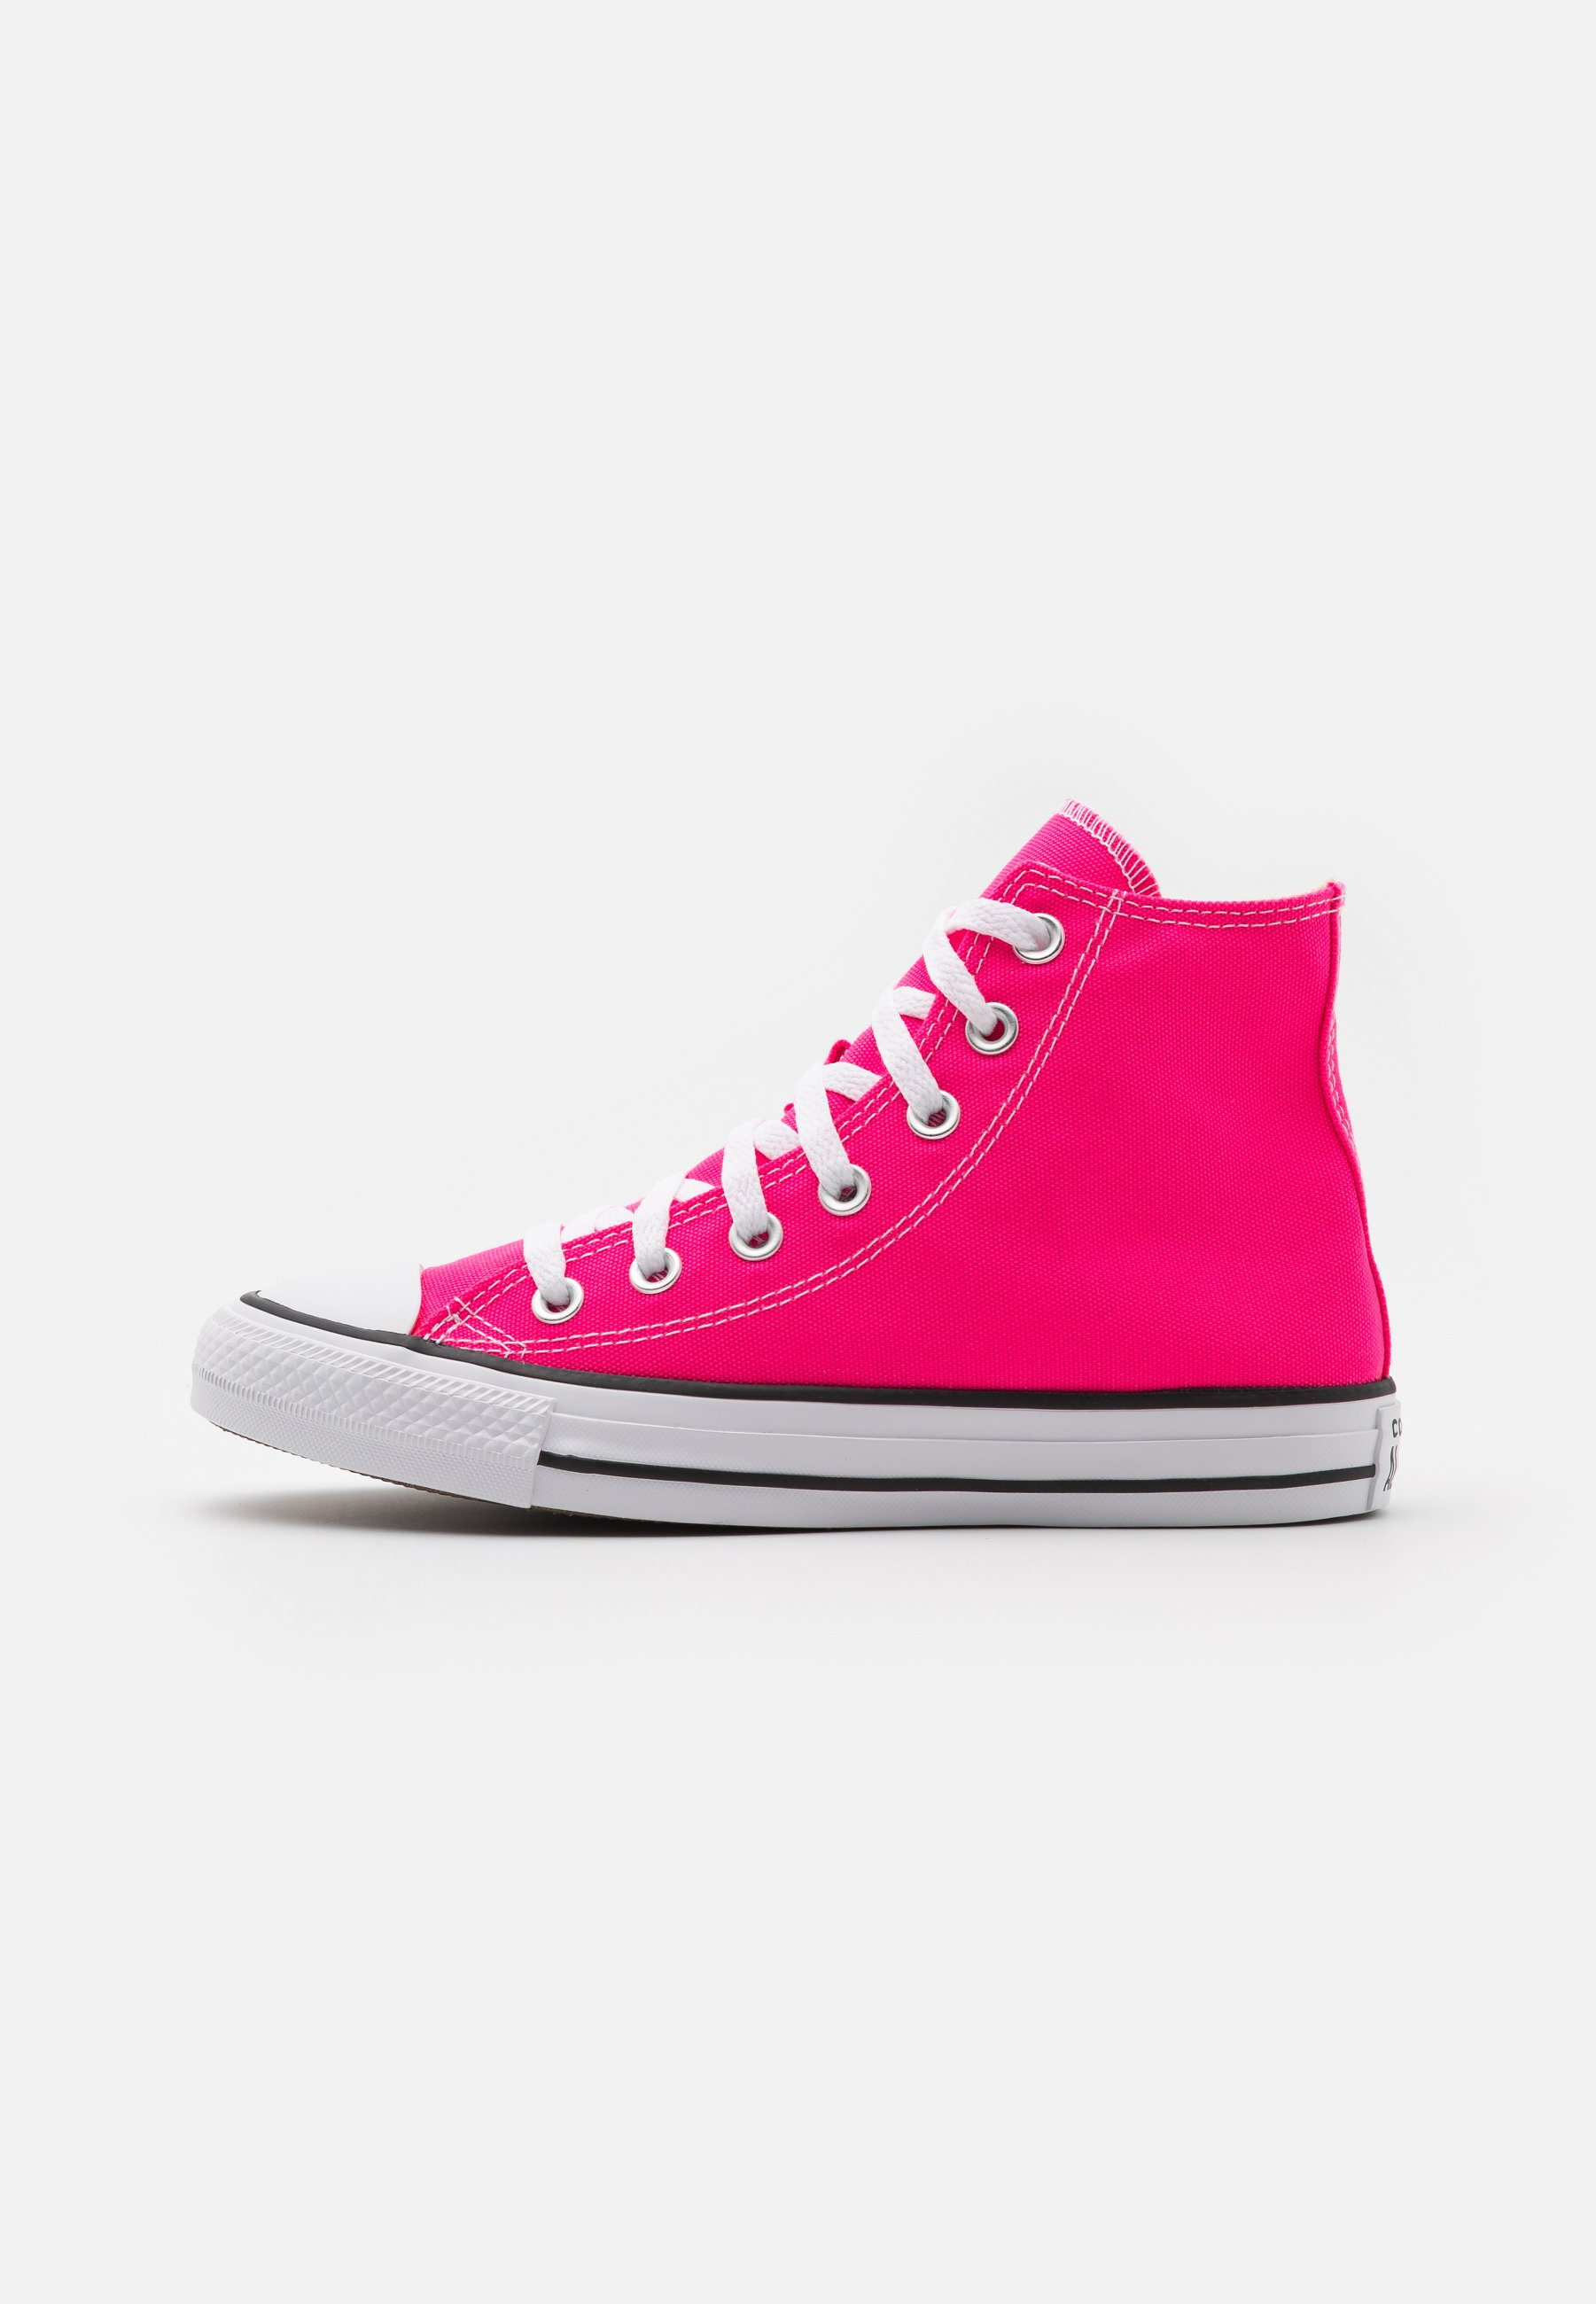 Men CHUCK TAYLOR ALL STAR SEASONAL COLOR UNISEX - High-top trainers